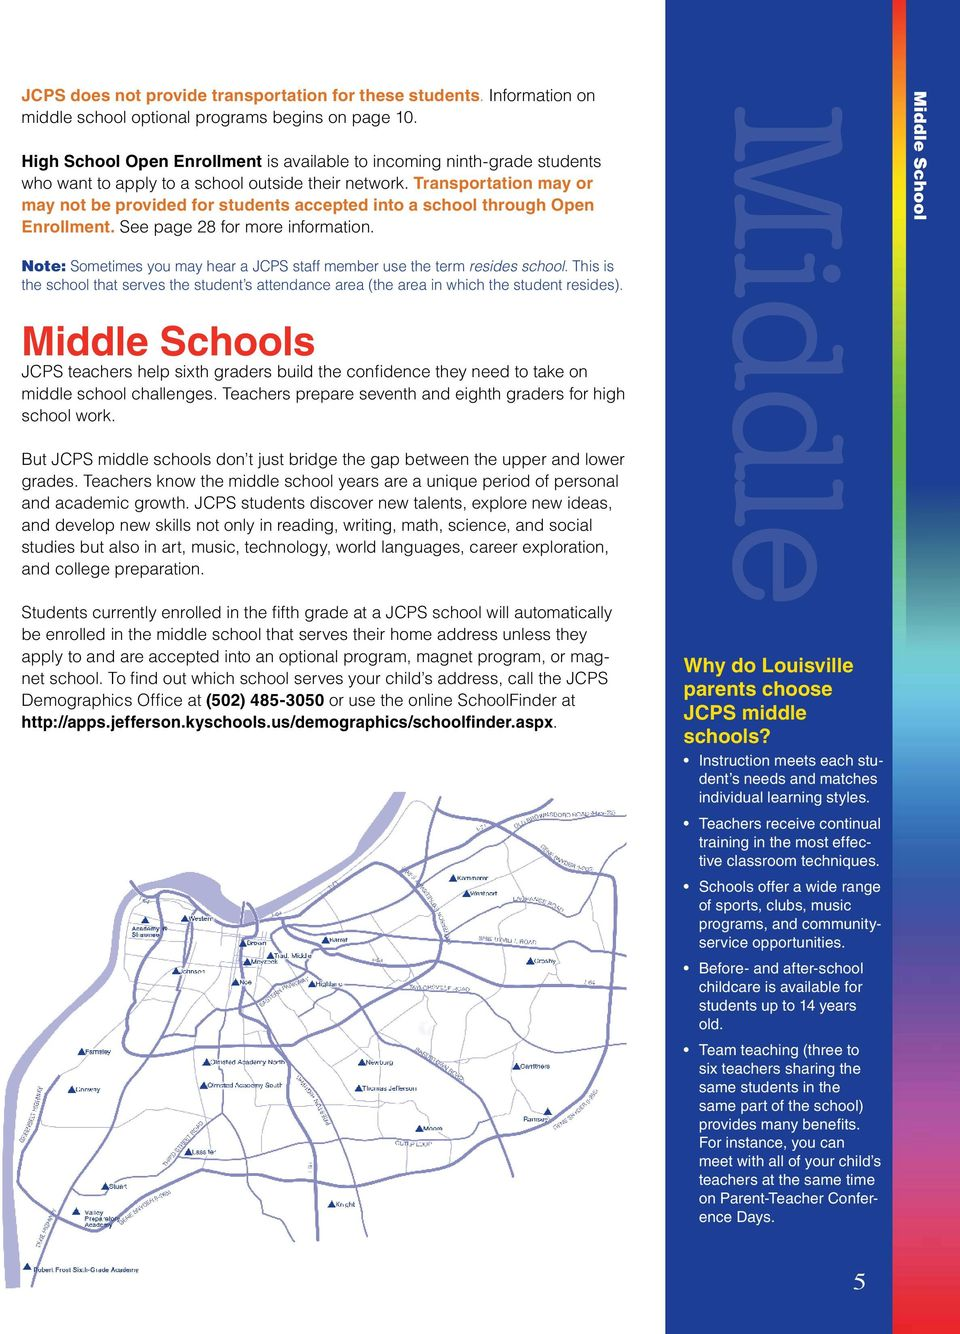 Transportation may or may not be provided for students accepted into a school through Open Enrollment. See page 28 for more information.